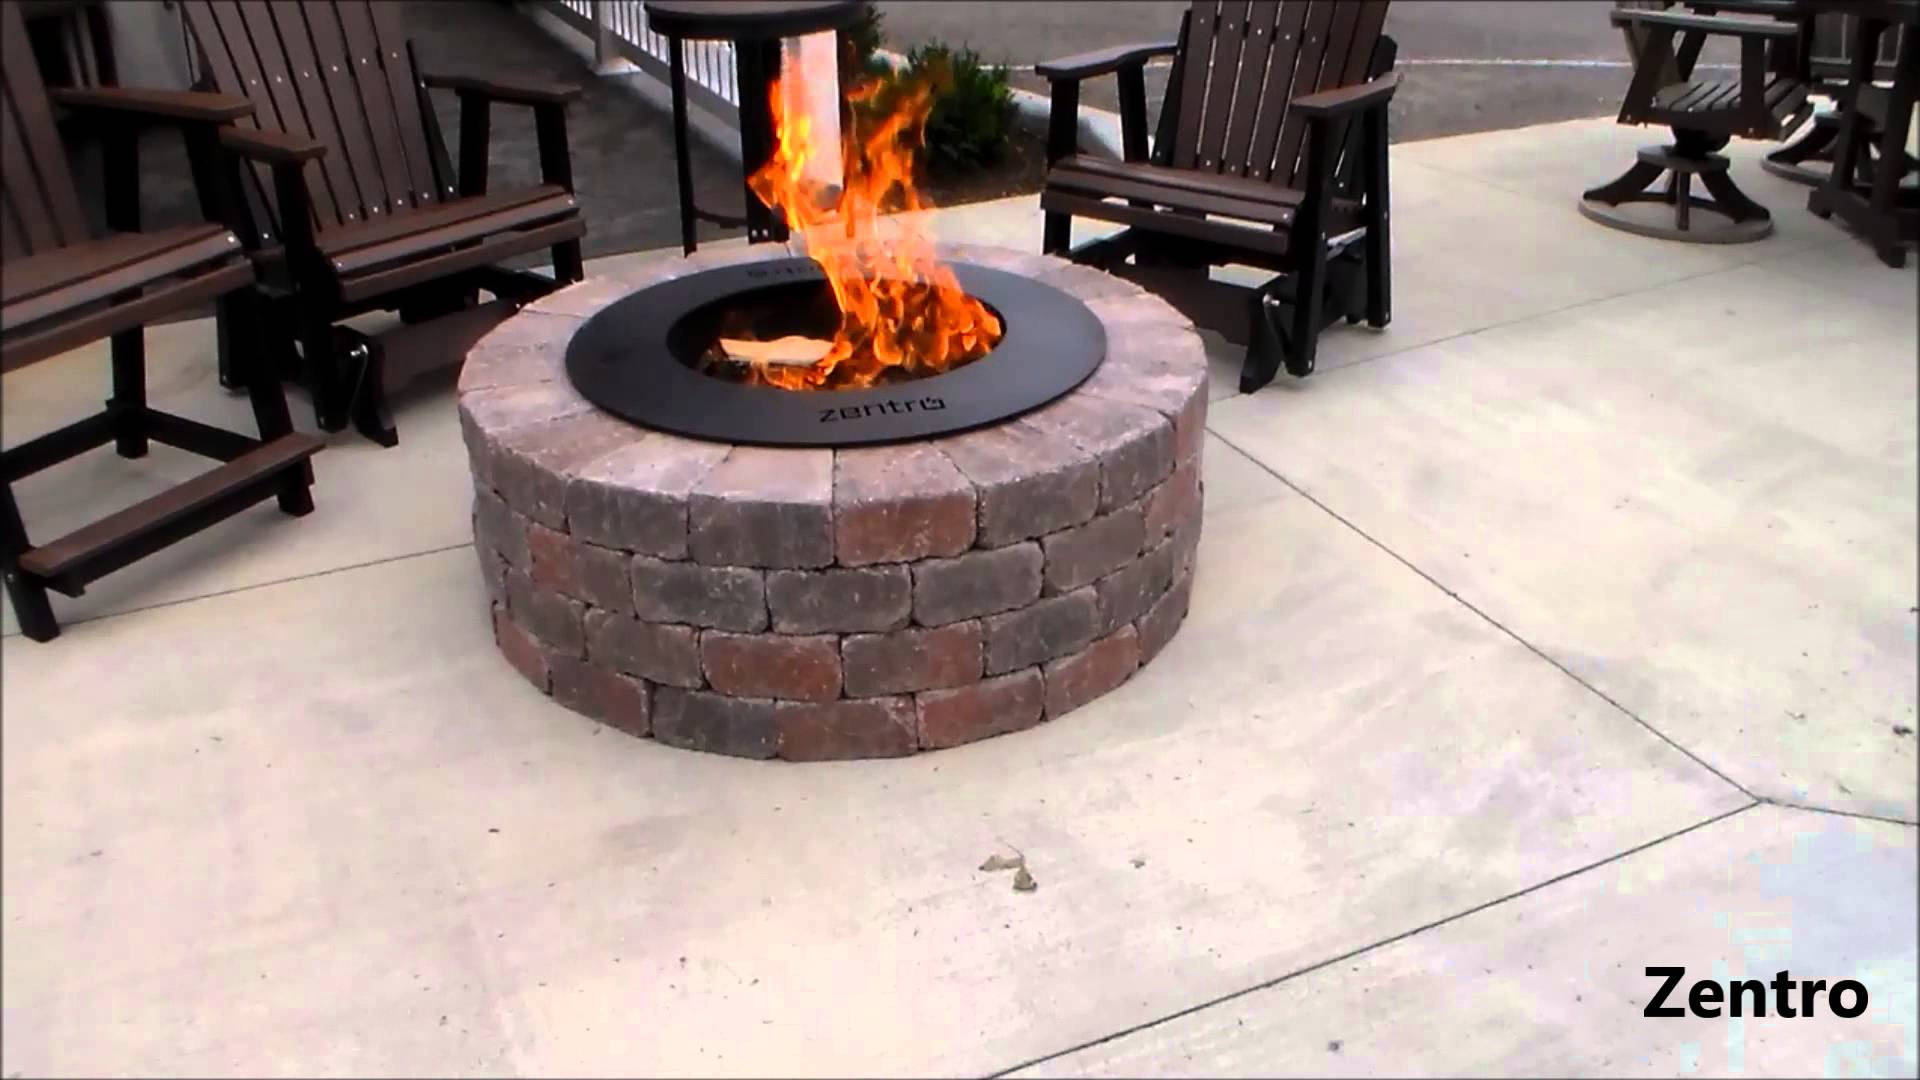 Zentro North Forge Fireplaces Inserts Stoves In Harrisburg within measurements 1920 X 1080